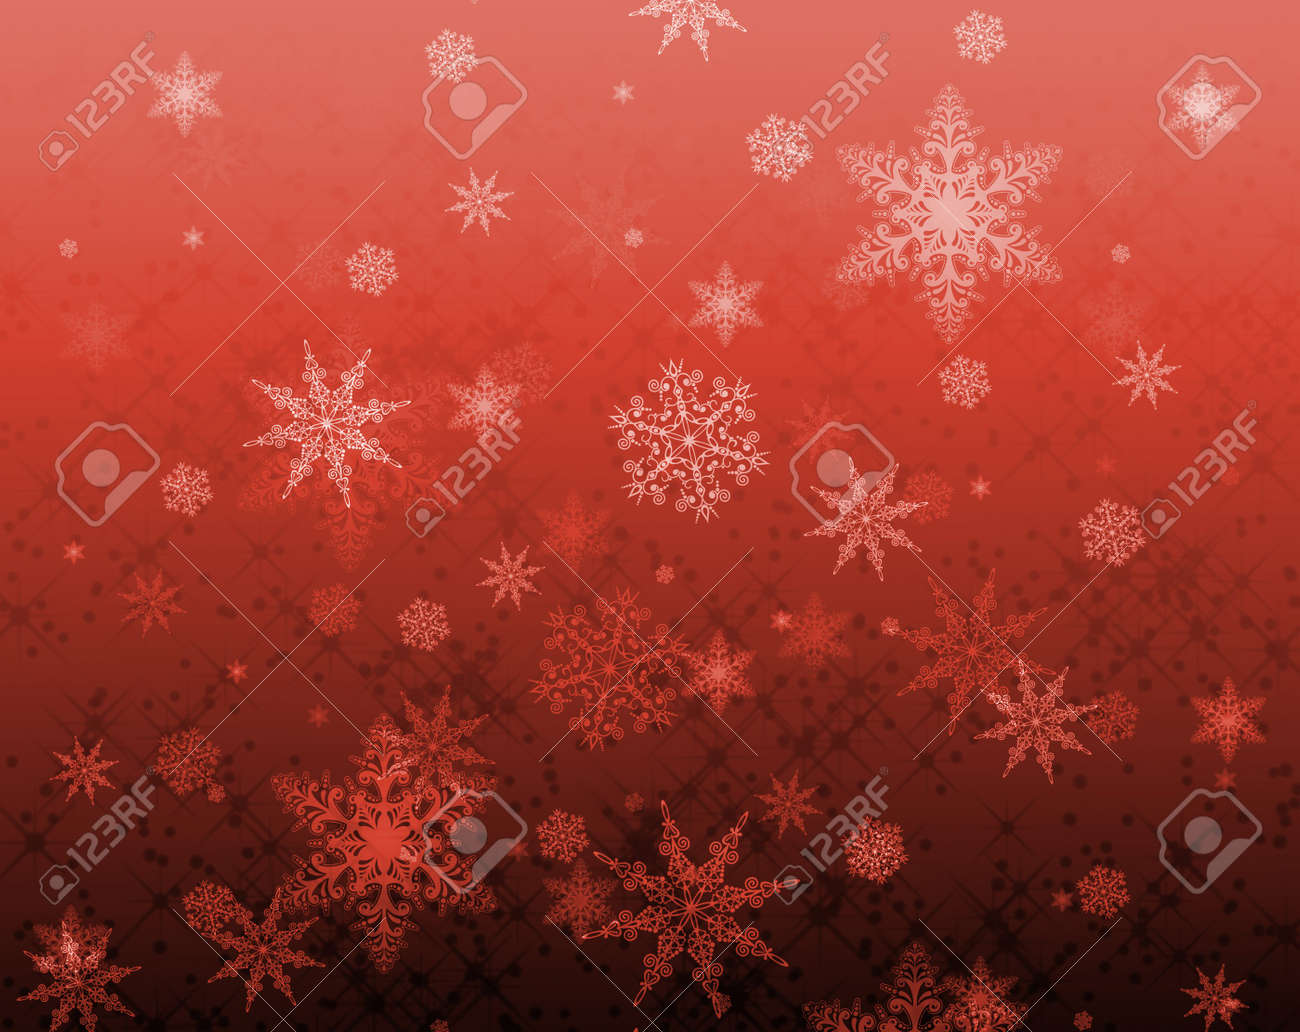 star and snowflake pattern for xmas backgrounds stock photo, picture